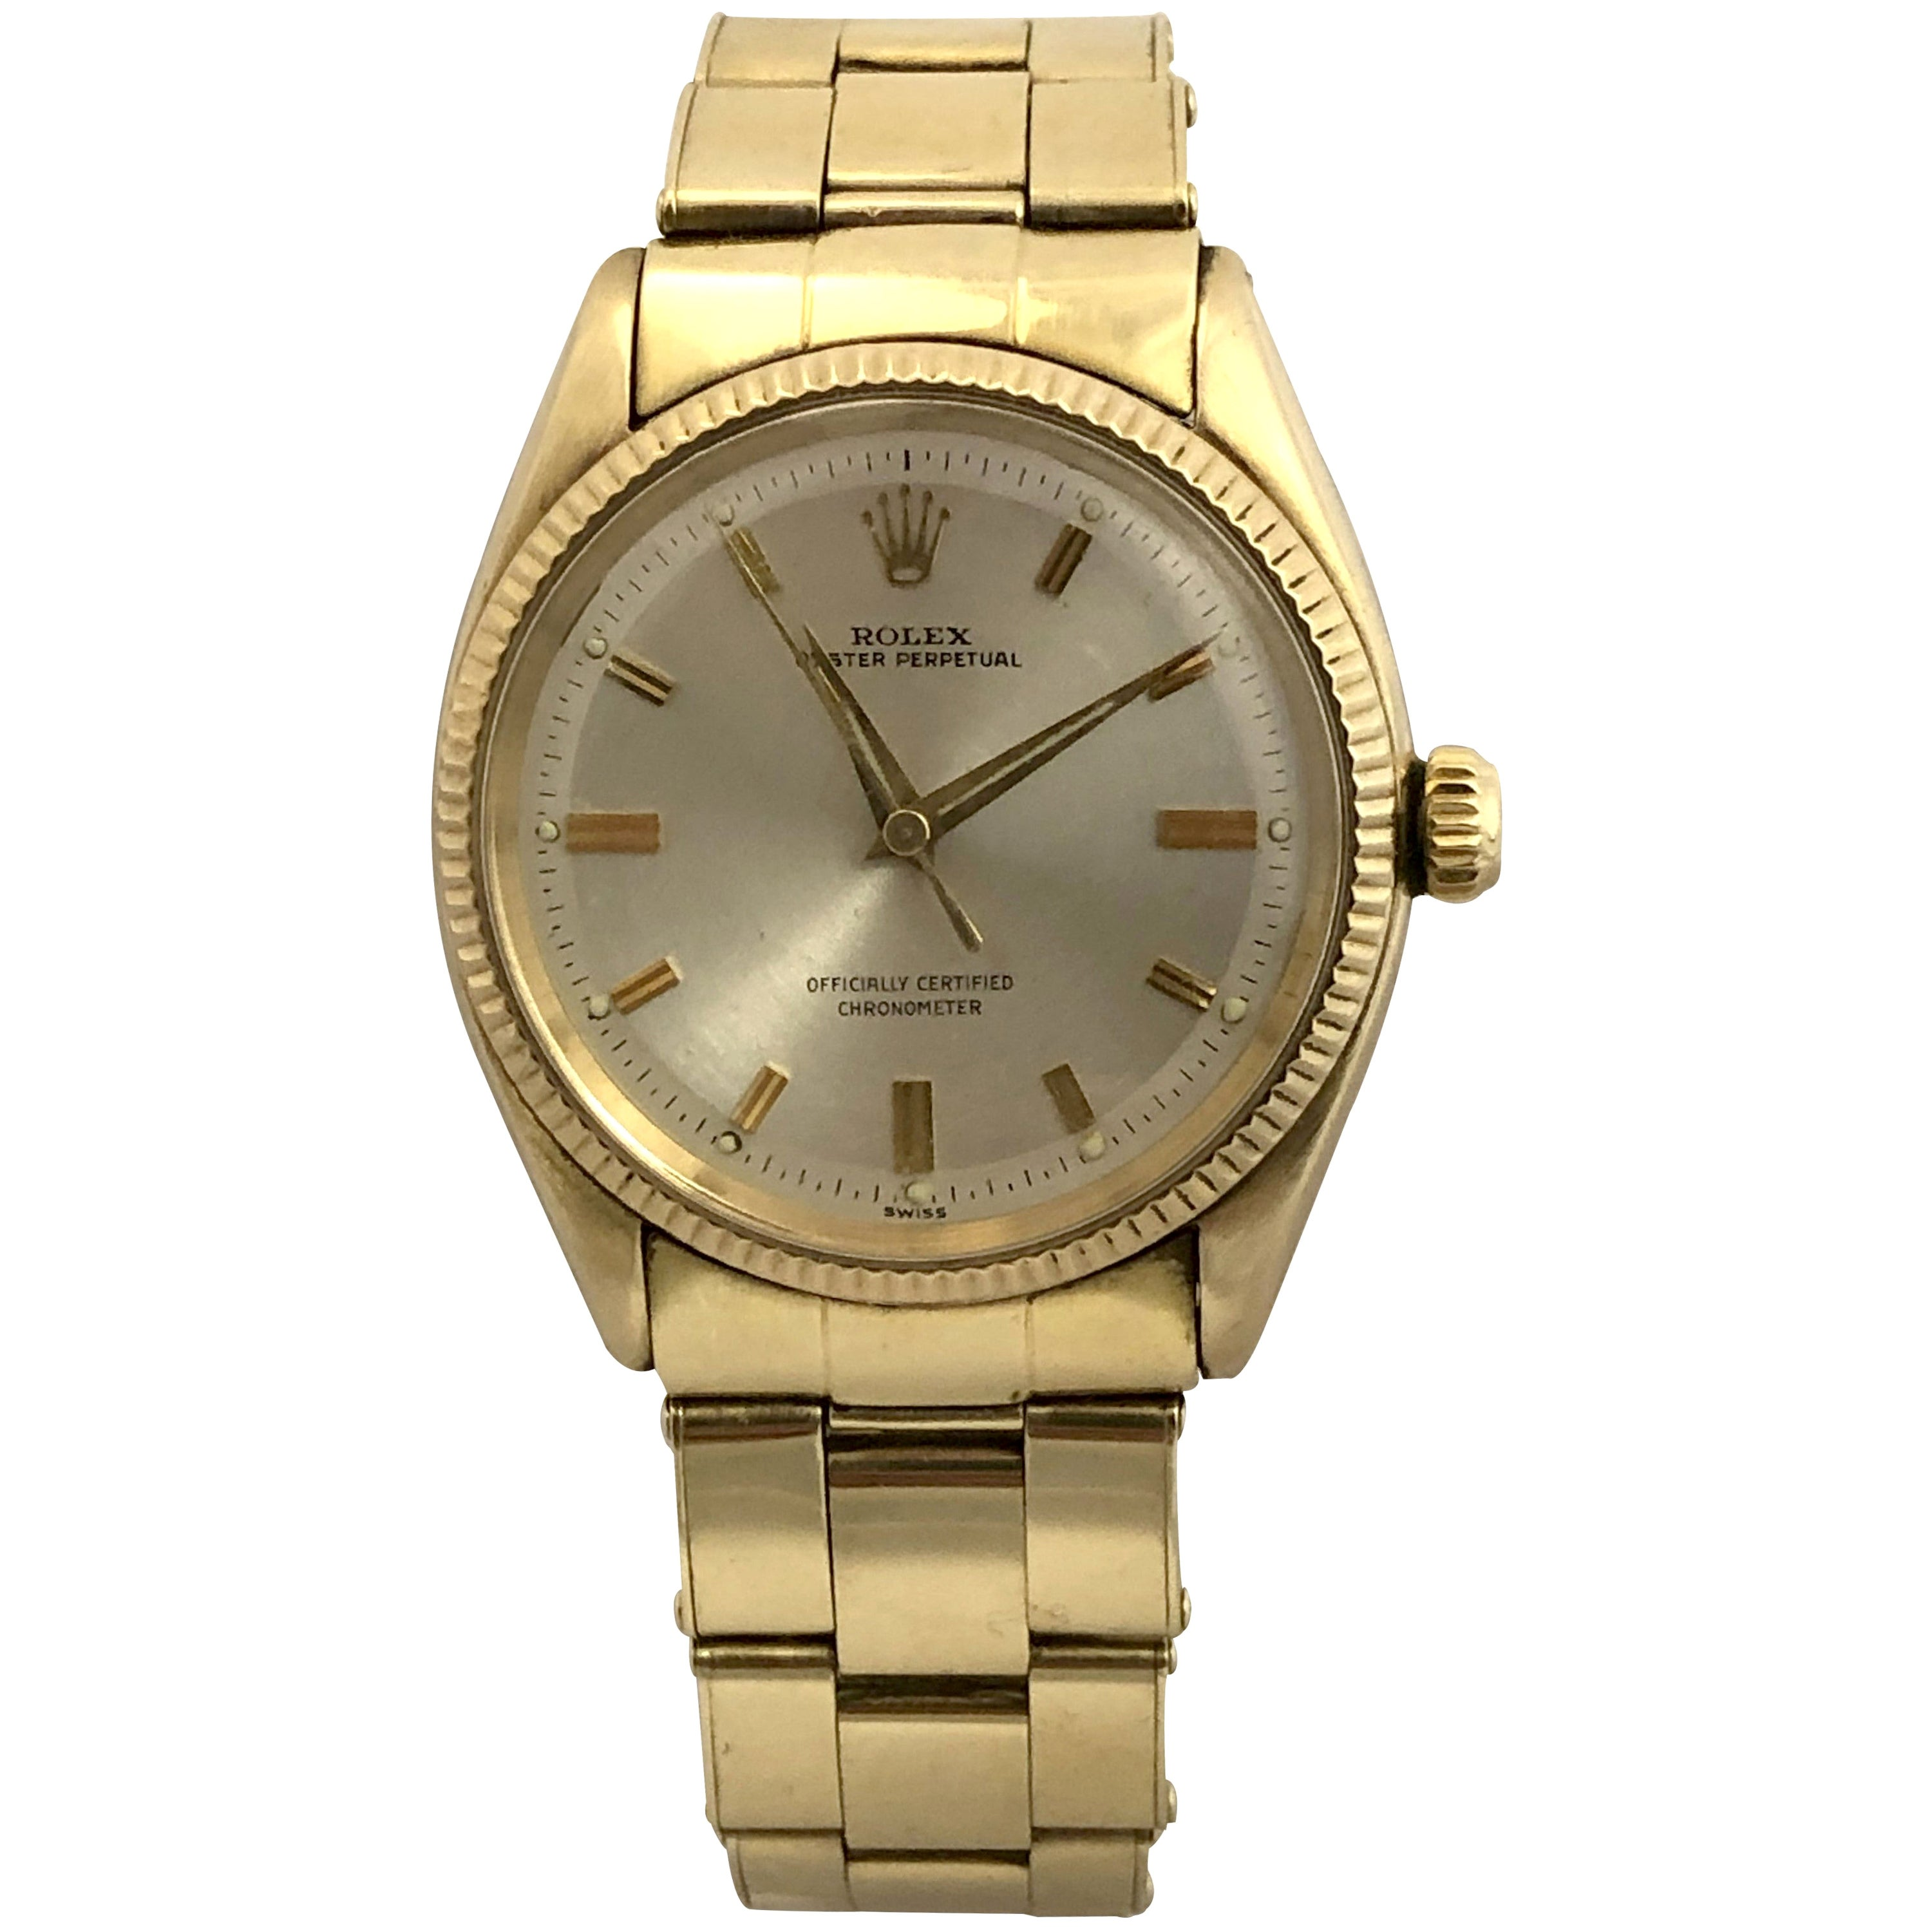 Rolex 1950s Ref 6567 Oyster Perpetual Gold Automatic Wristwatch on Bracelet